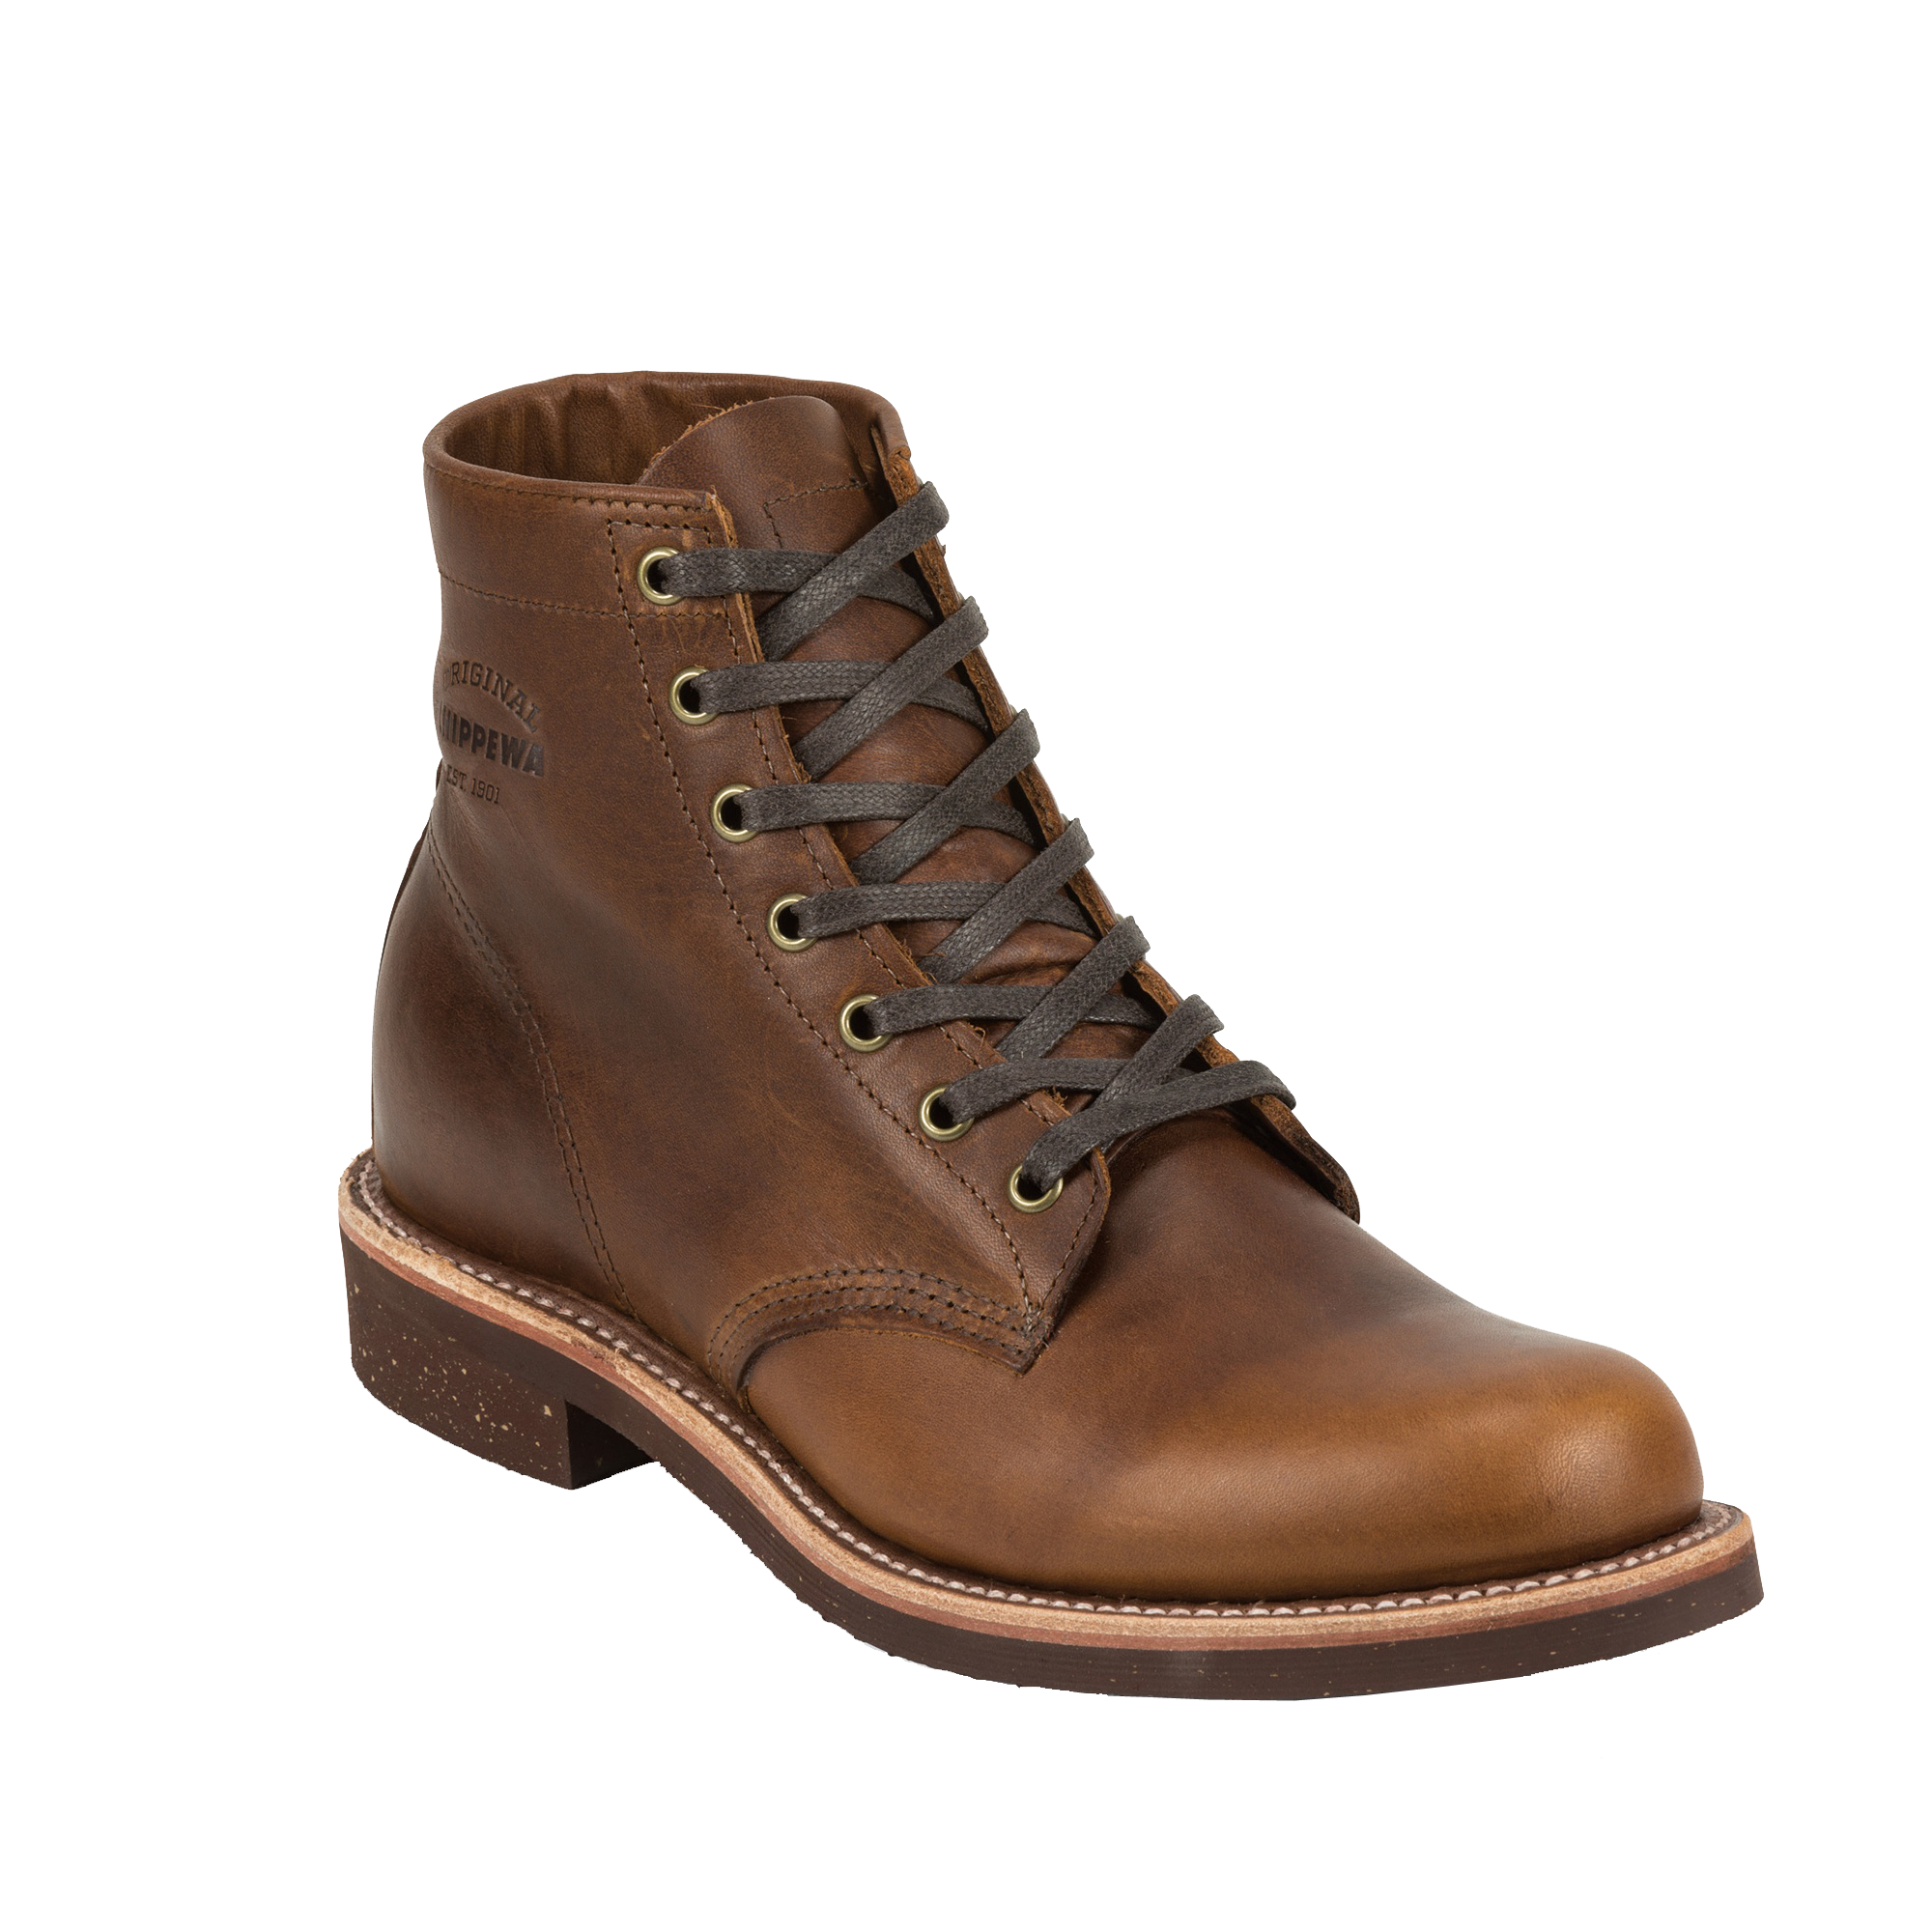 2017 Expensive Eastland Dakota Lace Up Boot Walnut Leather